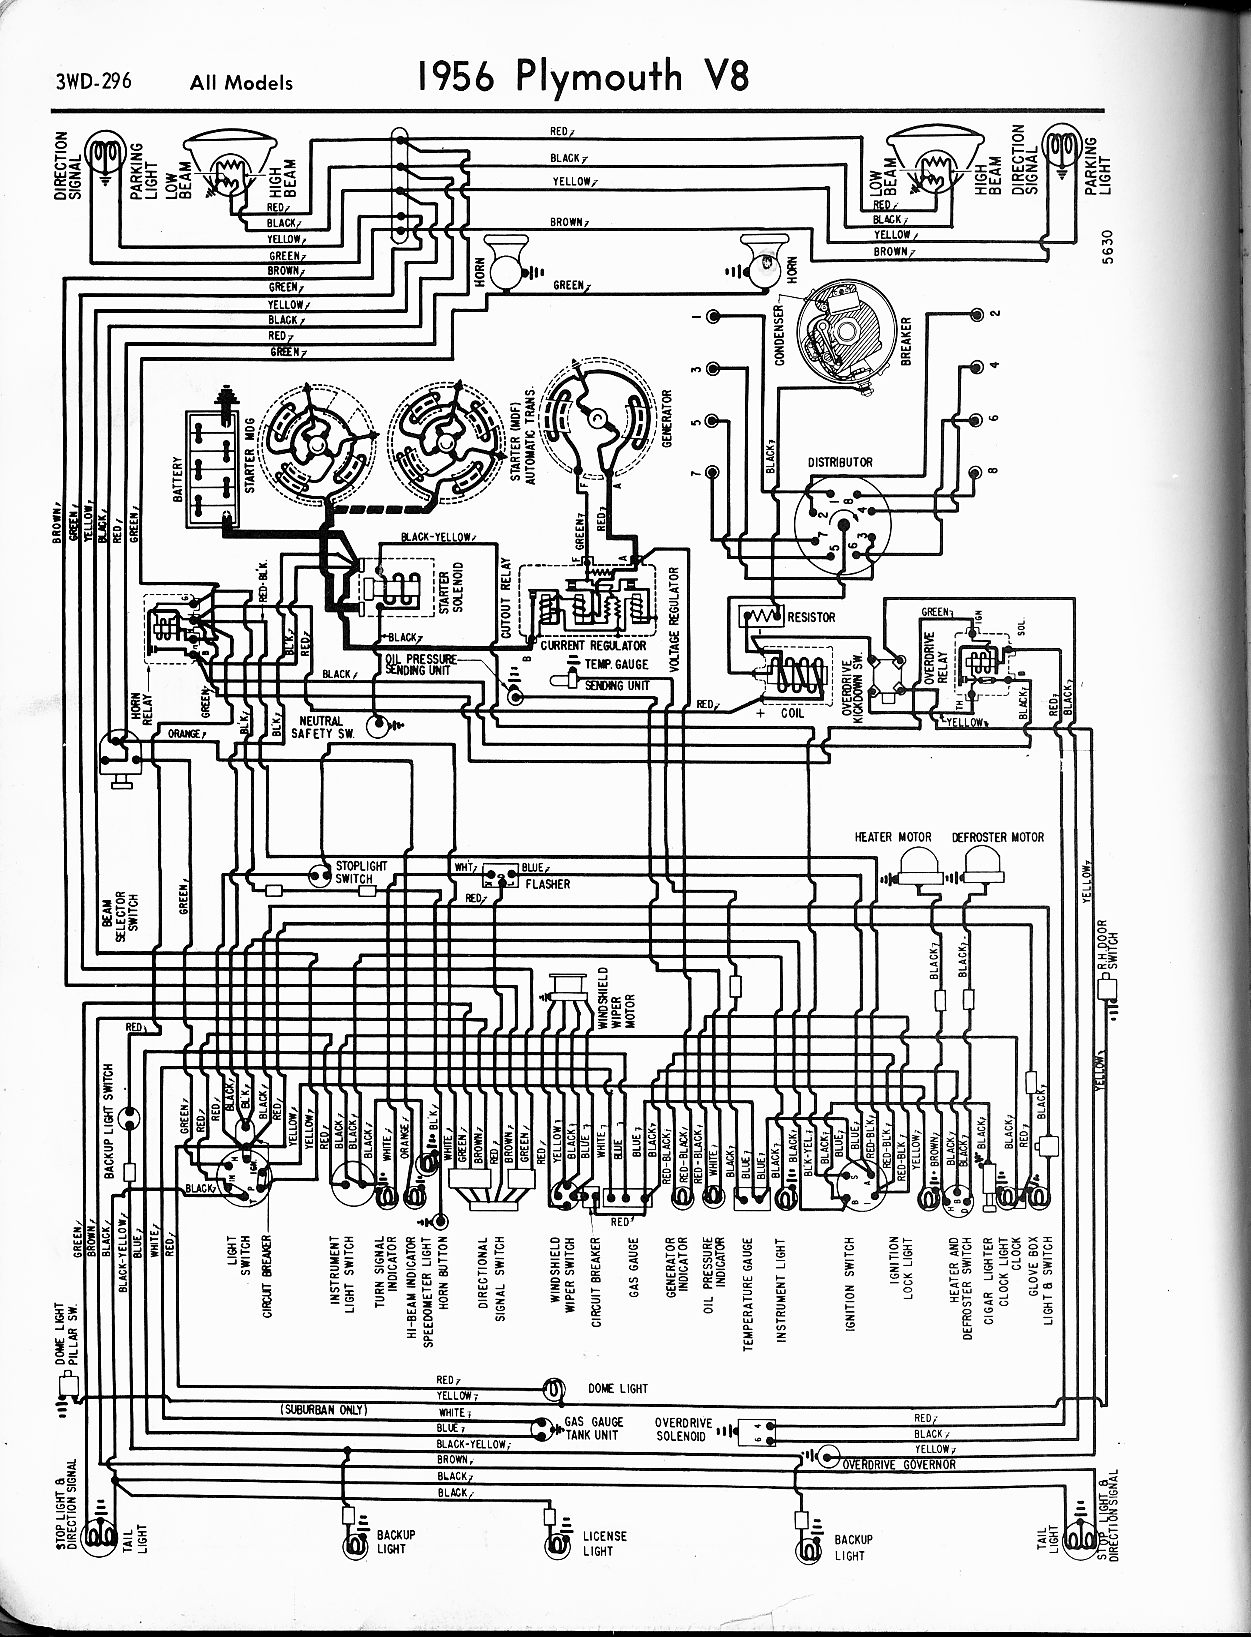 MWire5765 296 1956 1965 plymouth wiring the old car manual project 1955 plymouth wiring diagram at nearapp.co